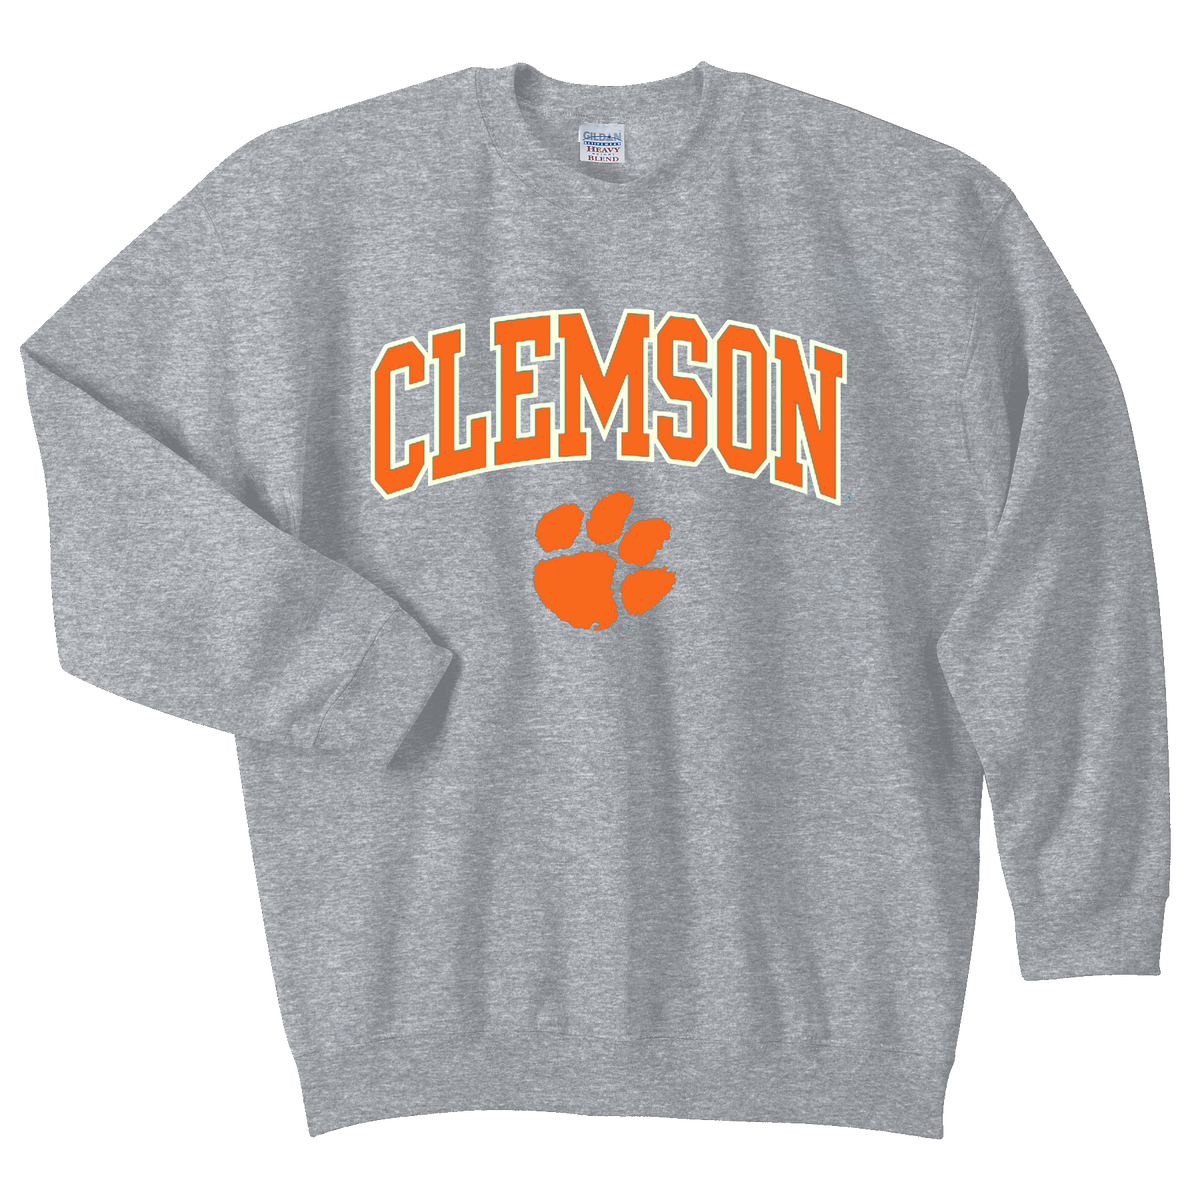 Clemson Tigers Toddler Crew Neck Sweater With Arch Over Paw